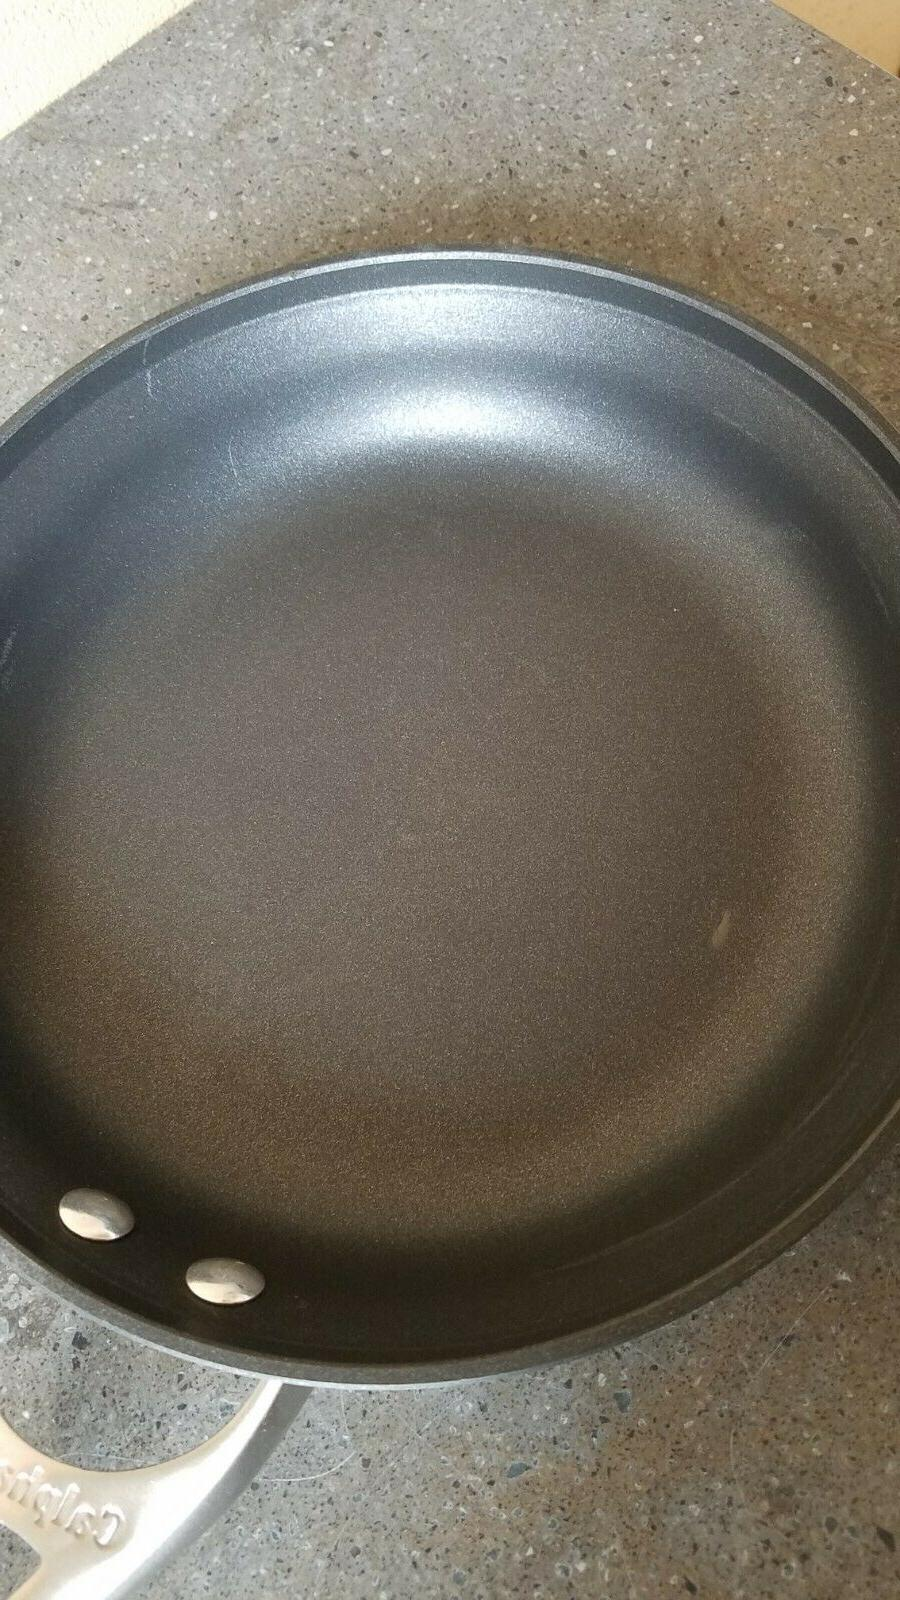 Calphalon Pan Contemporary Non Stick 10-Inch and Heavy Gauge